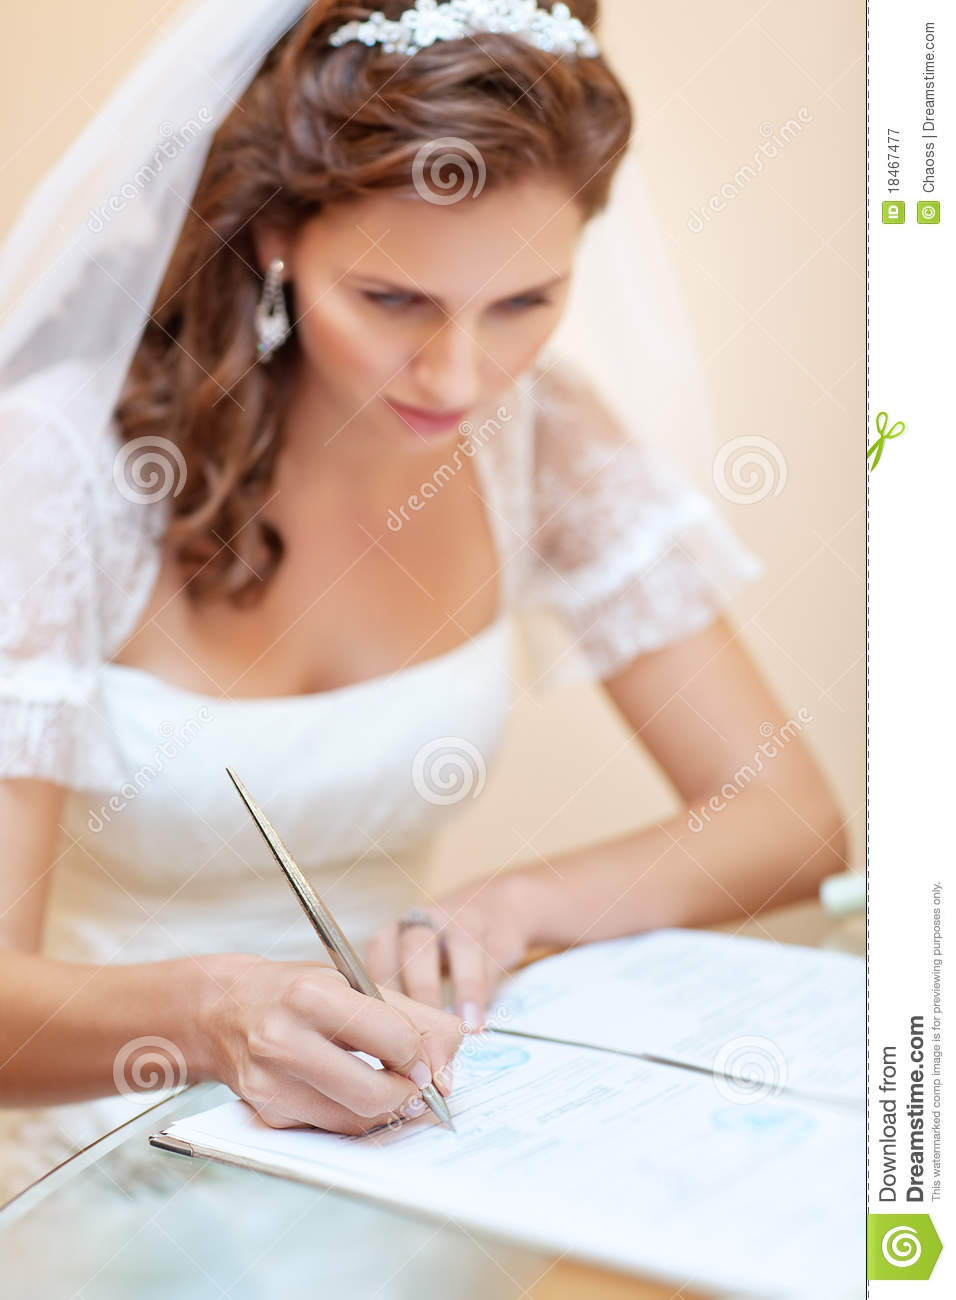 Bride Documents That 64